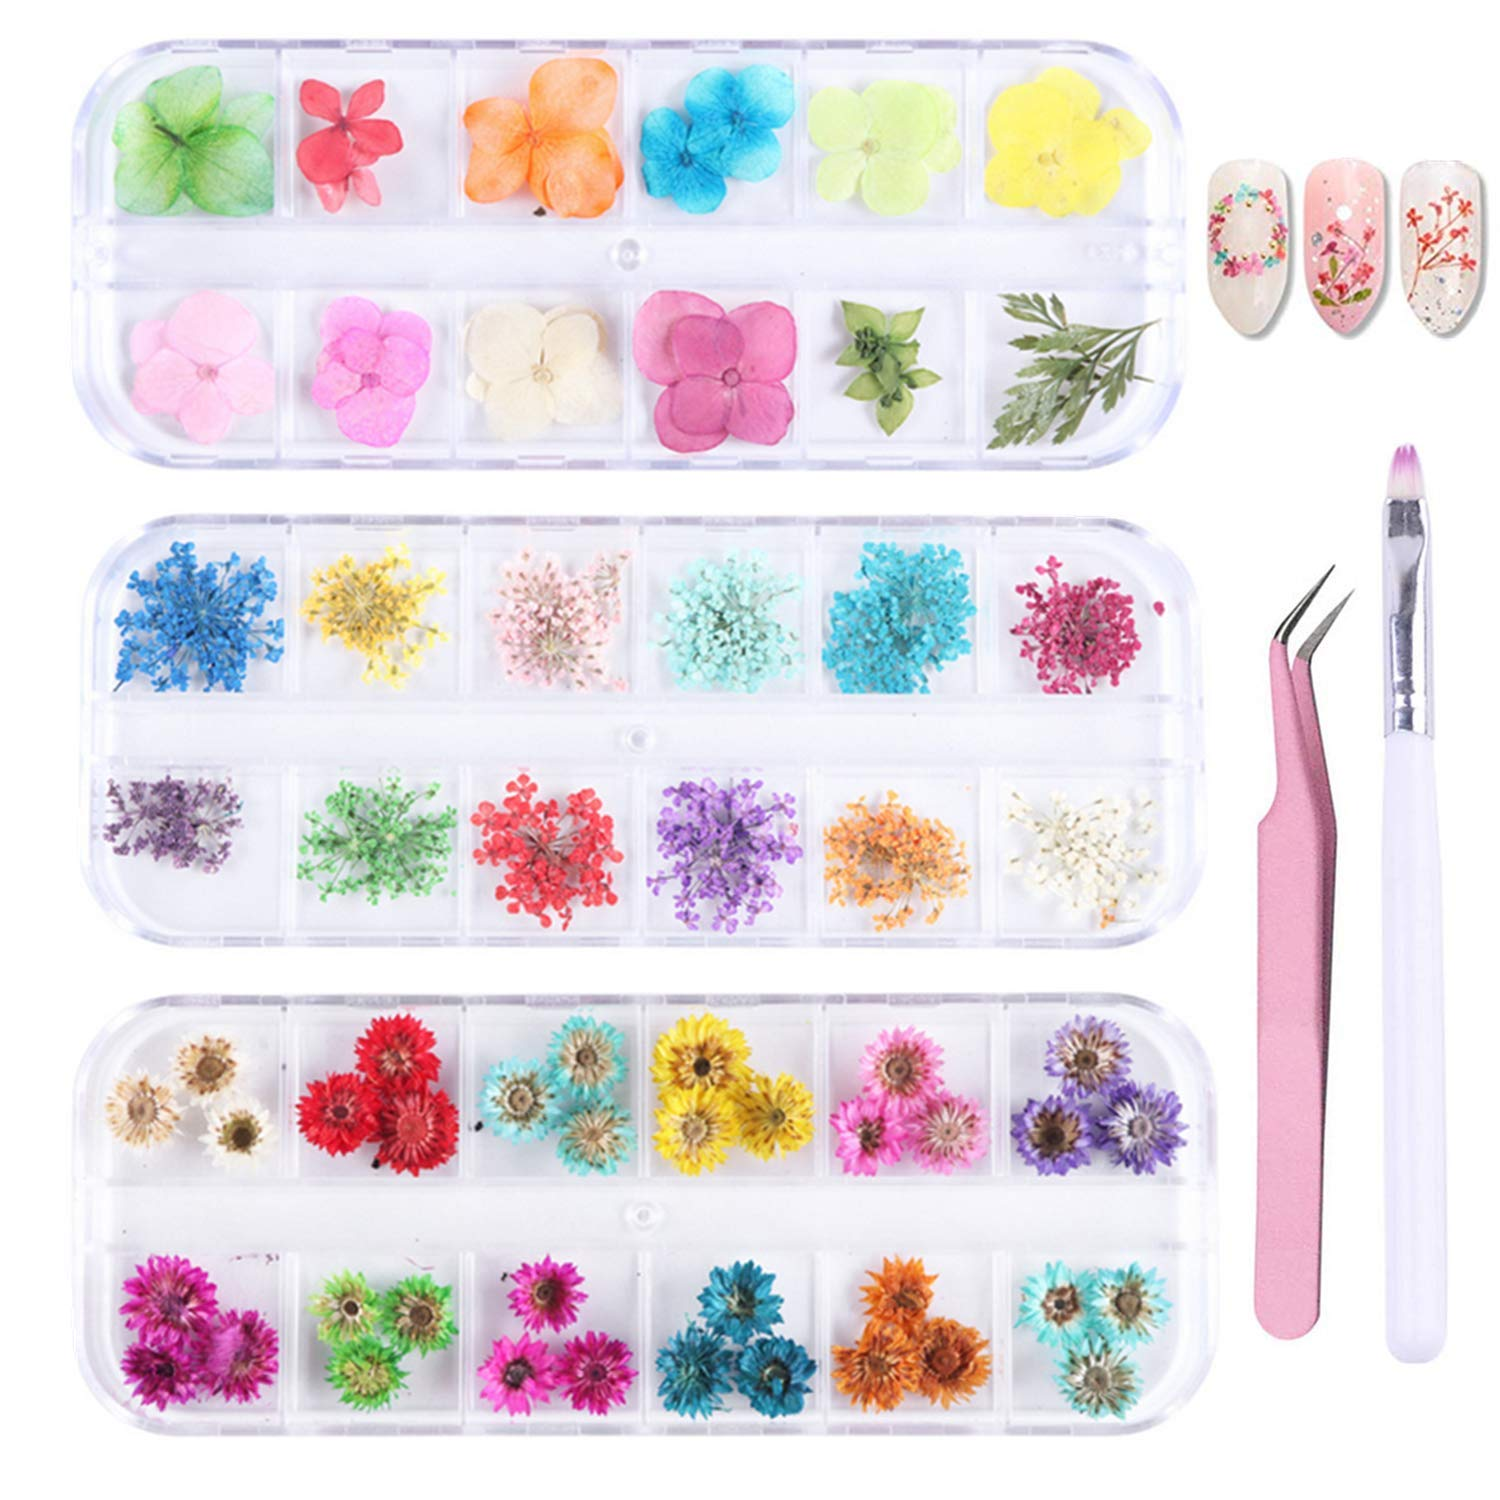 PHAETON 36 Colors Mini Nail Dried Flowers 3D Nail Art Sticker, Flower Beauty Nail Stickers for Manicure, Natural Real Dry Flower Kit with a Curved Tweezers and a Nail Brush 3 Boxes by PHAETON